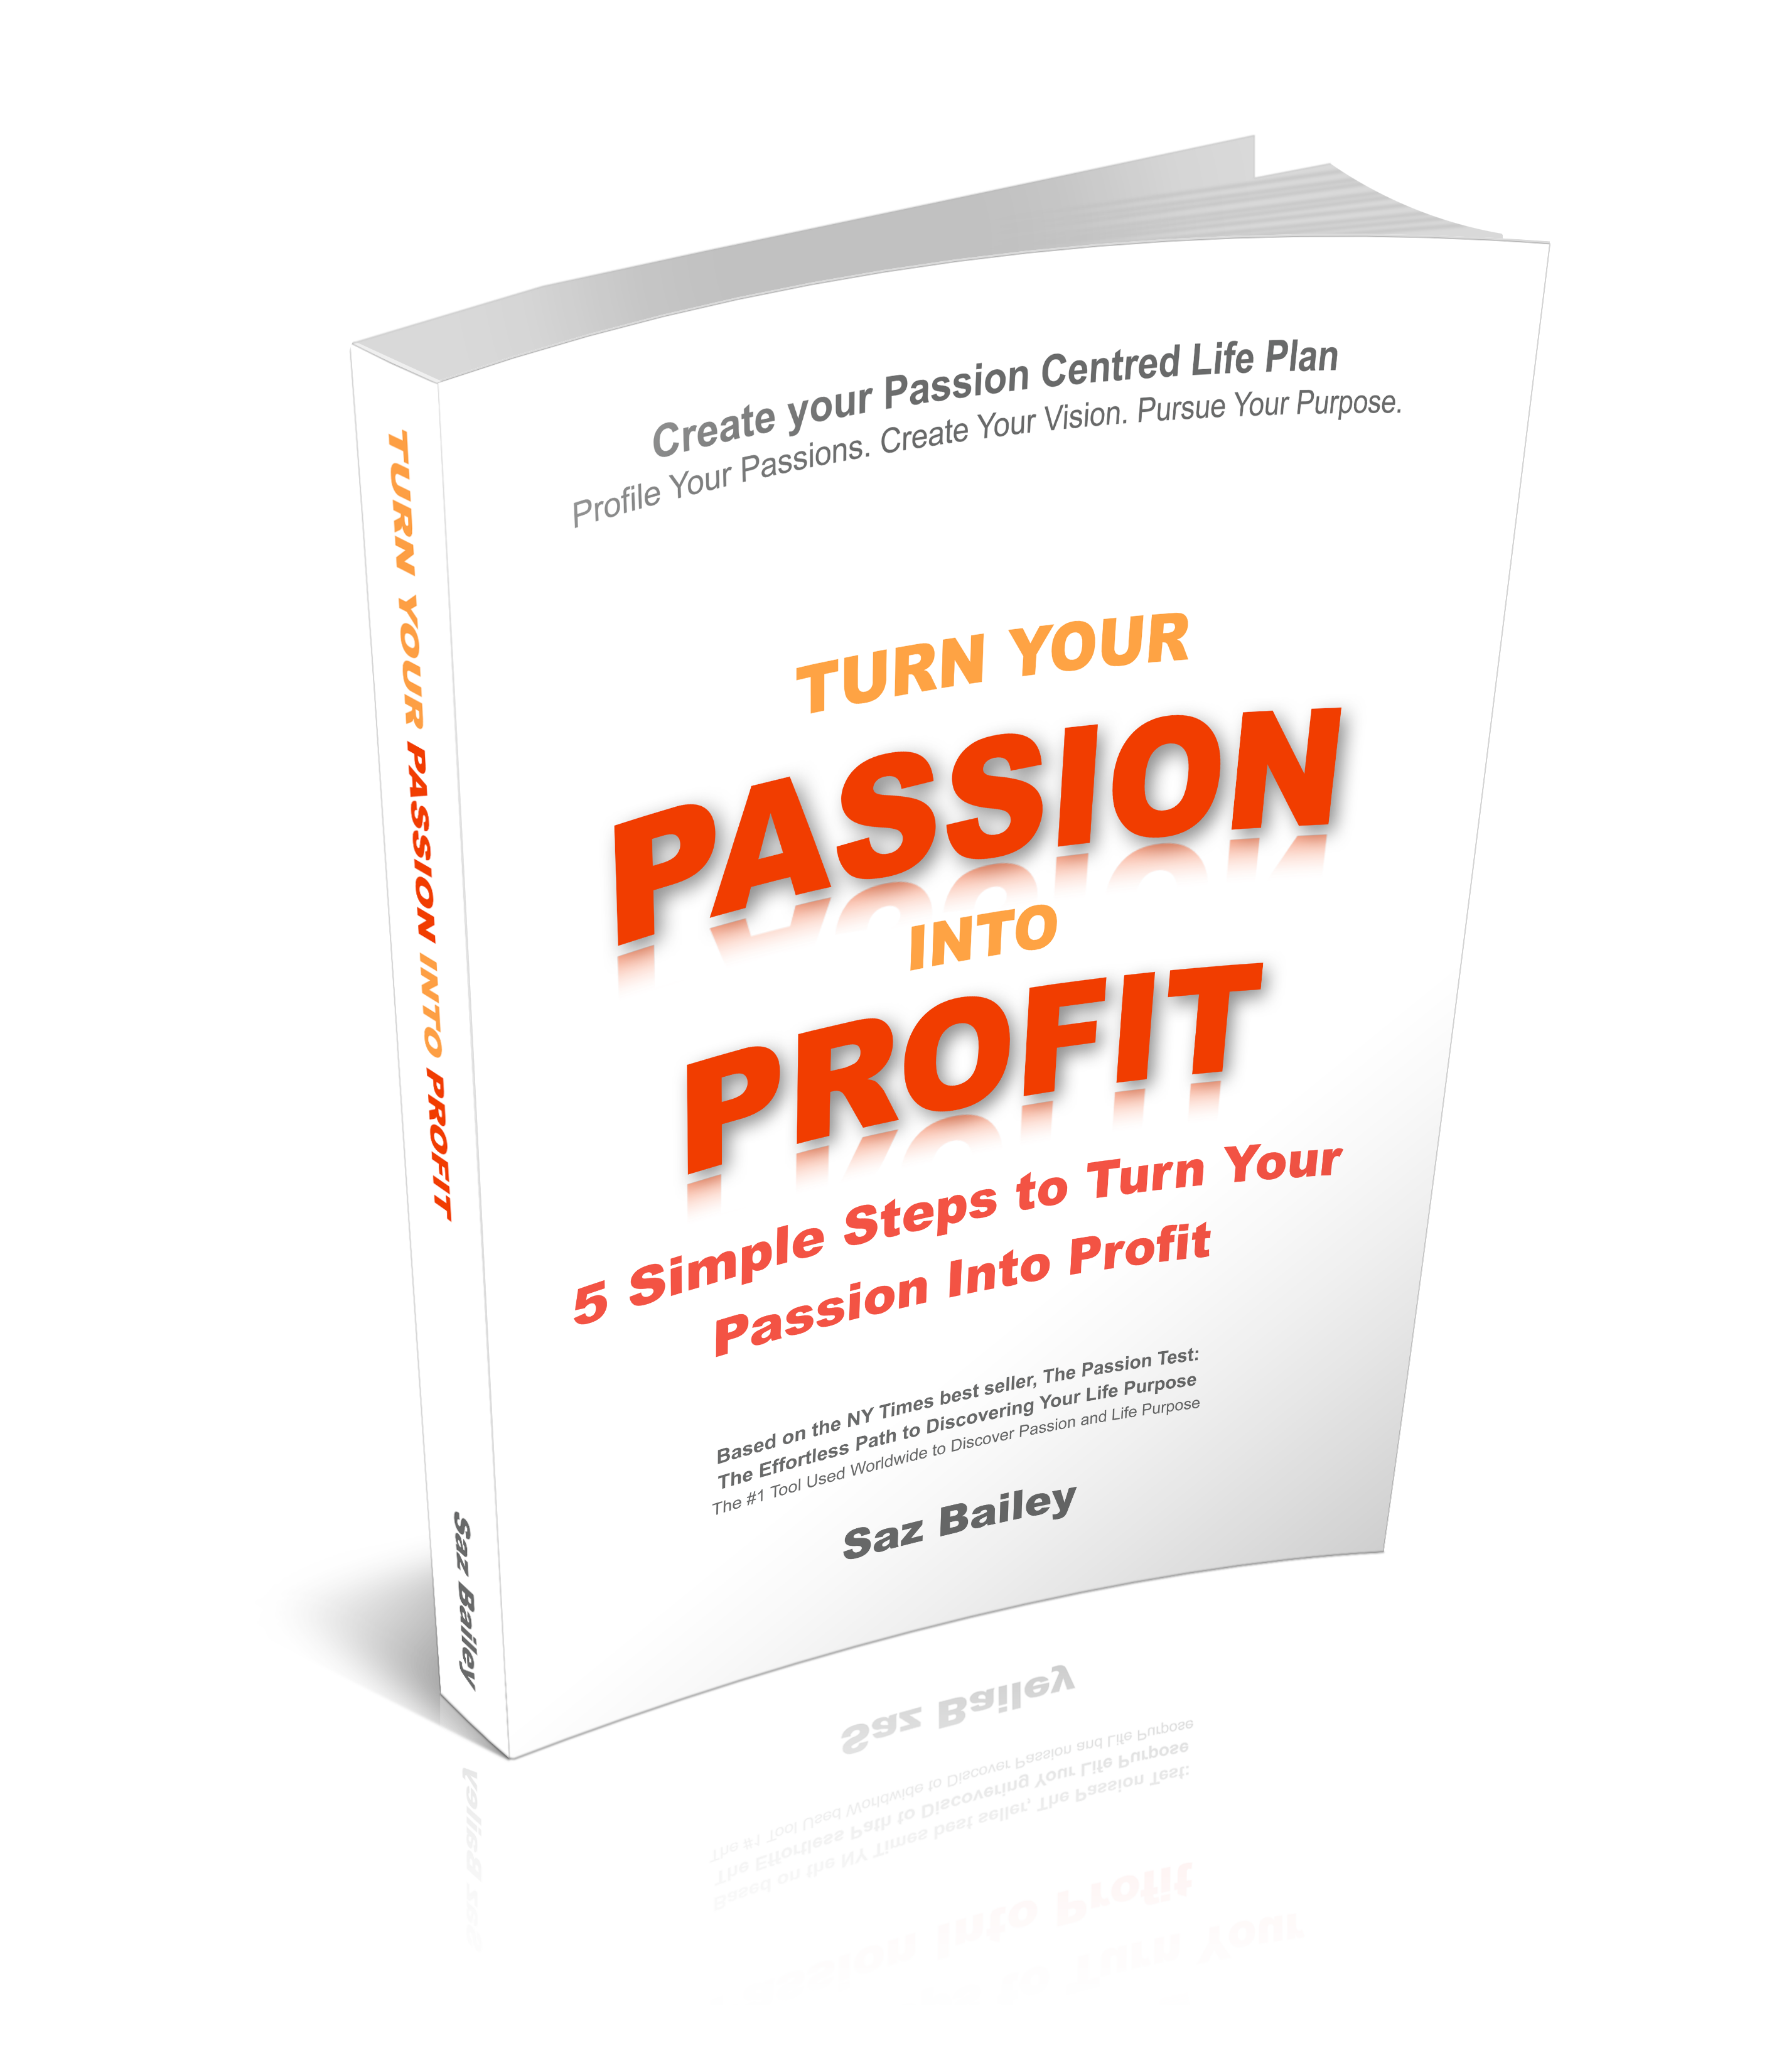 Image of Turn Your Passion Into Profit Book